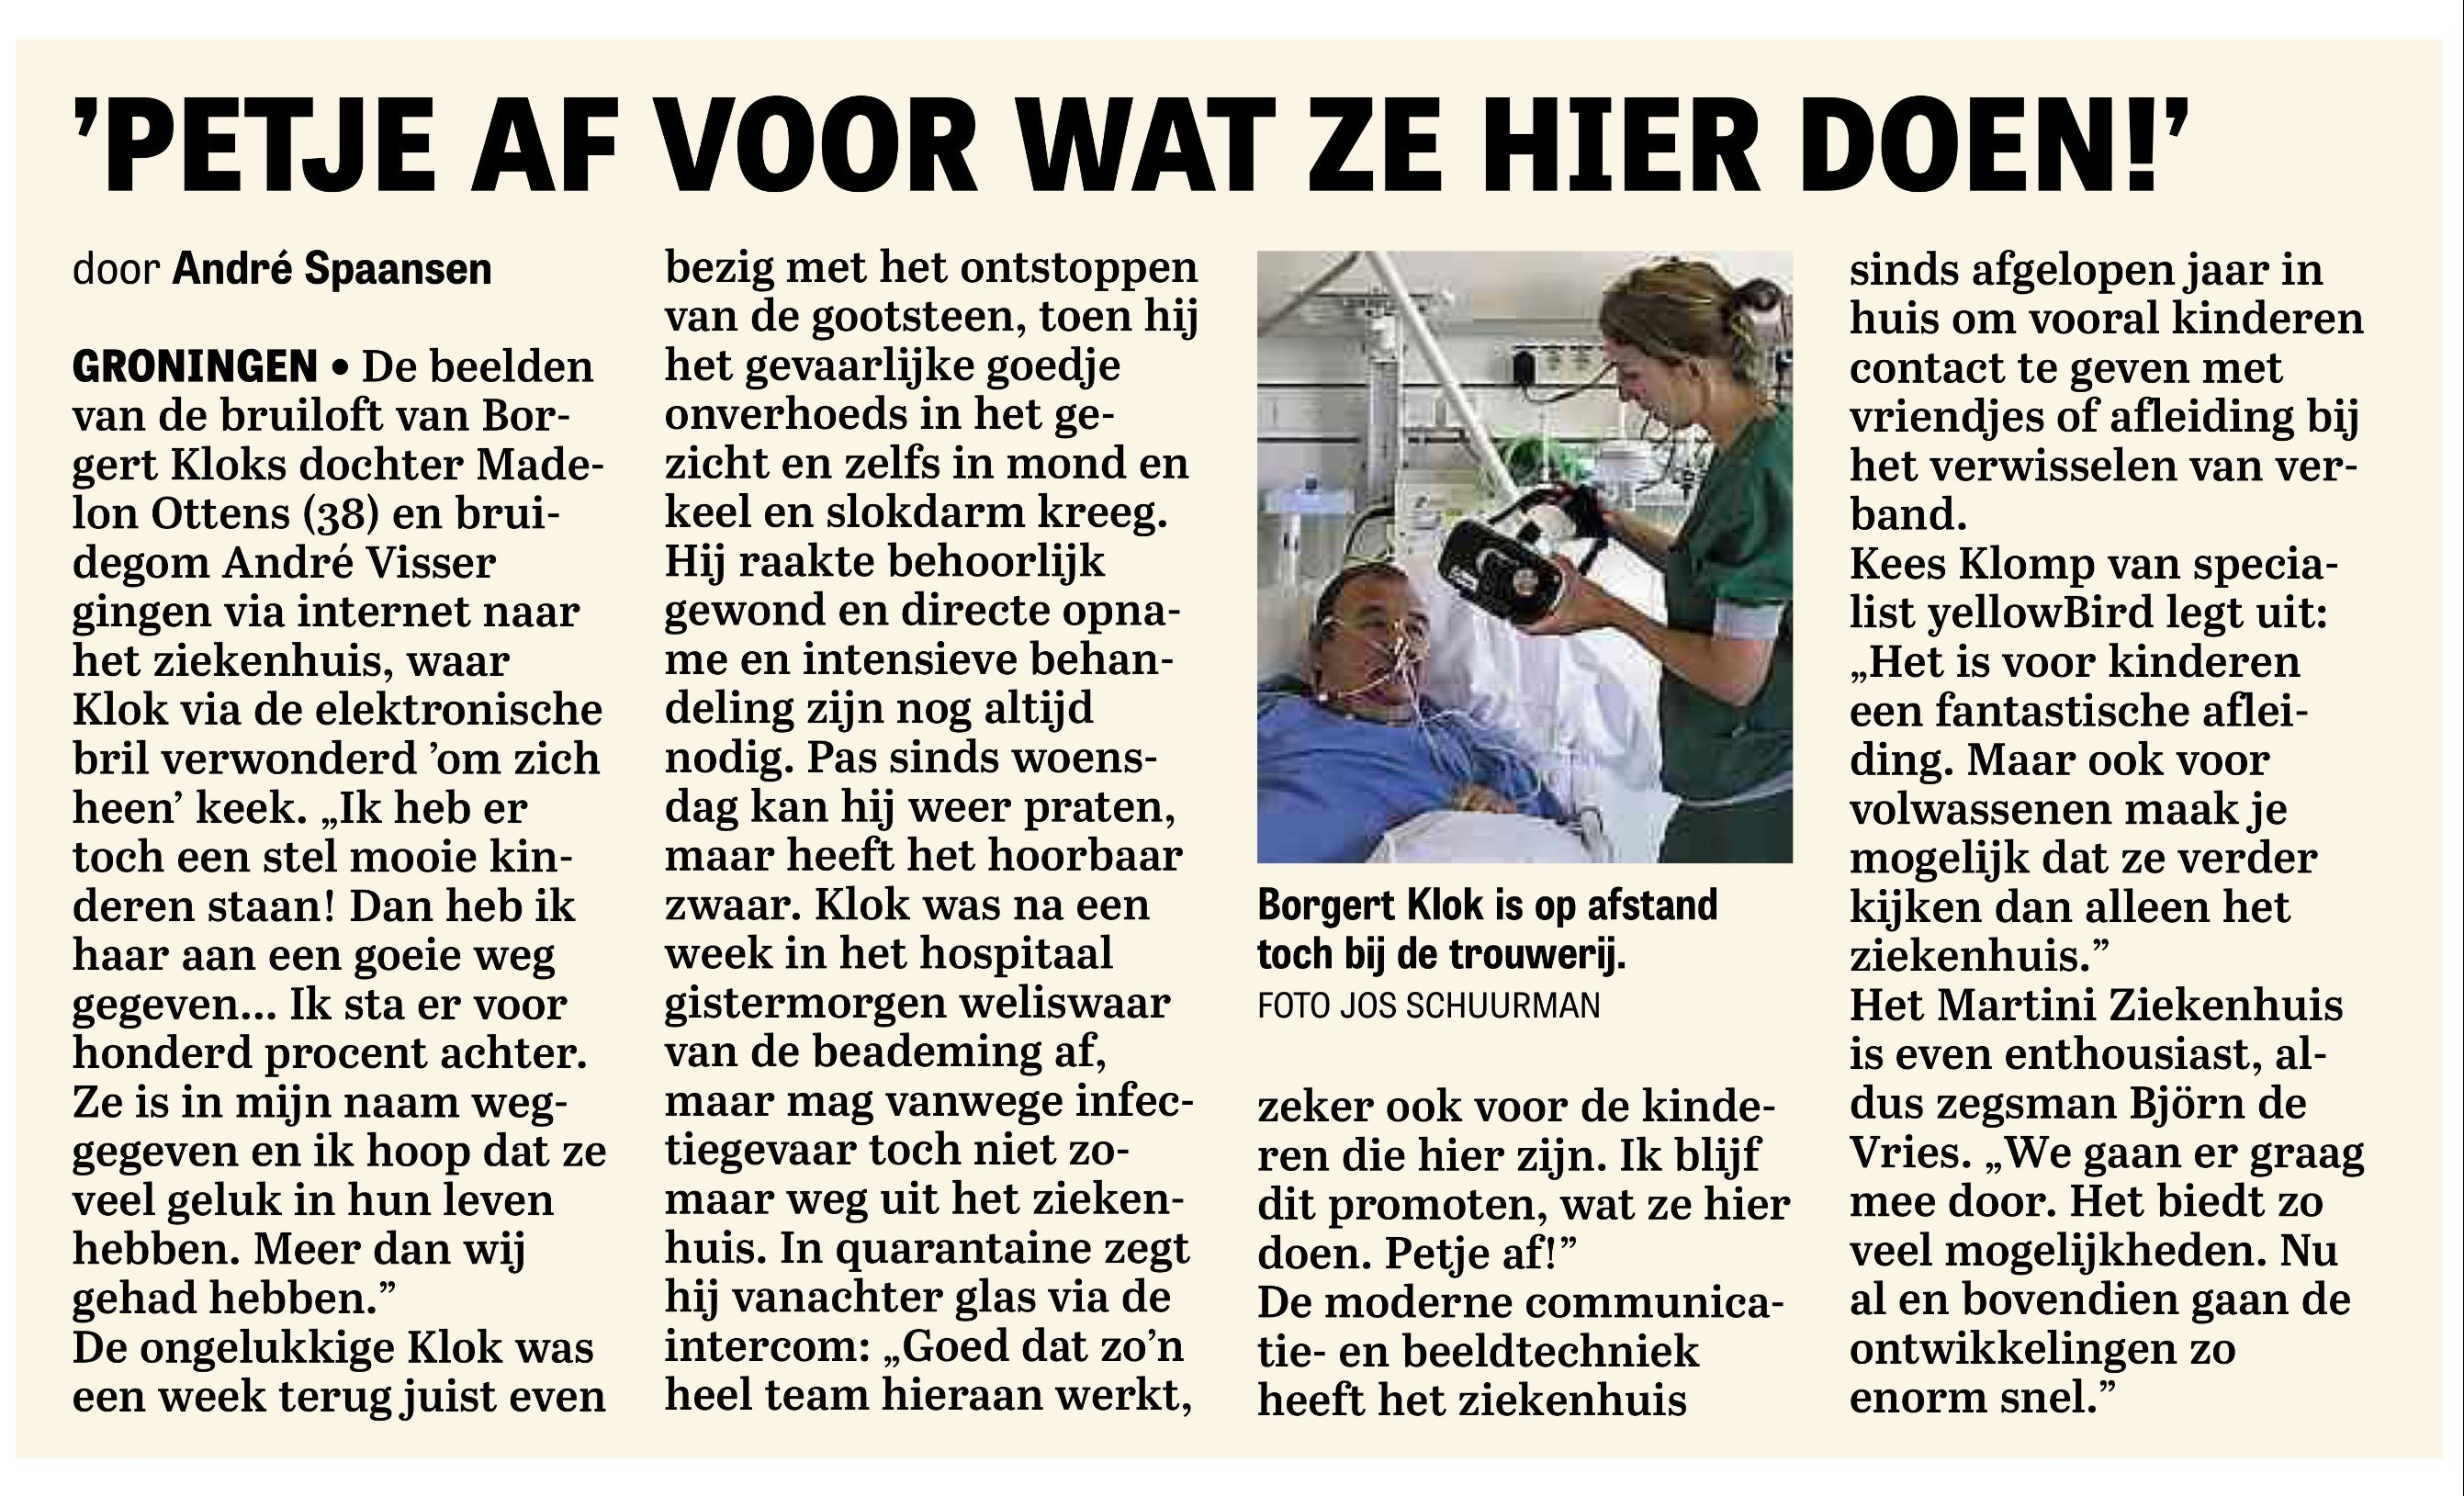 HyperVR used in patient medical therapy in Netherlands hospitals